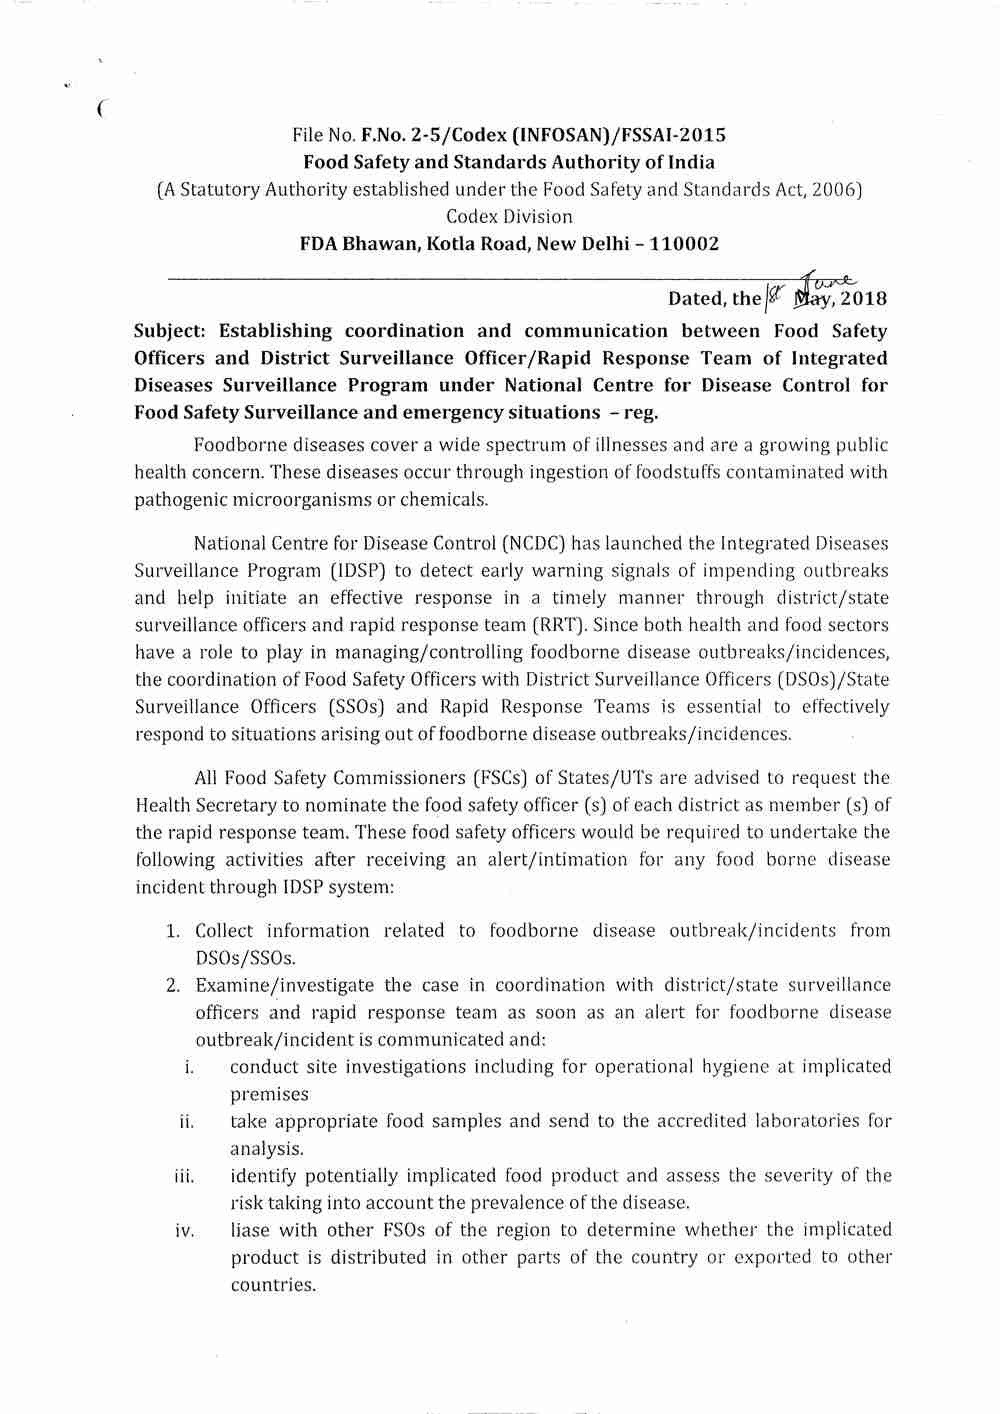 Letter_FSO_Rapid_Response_Team_15_06_2018_Page_1